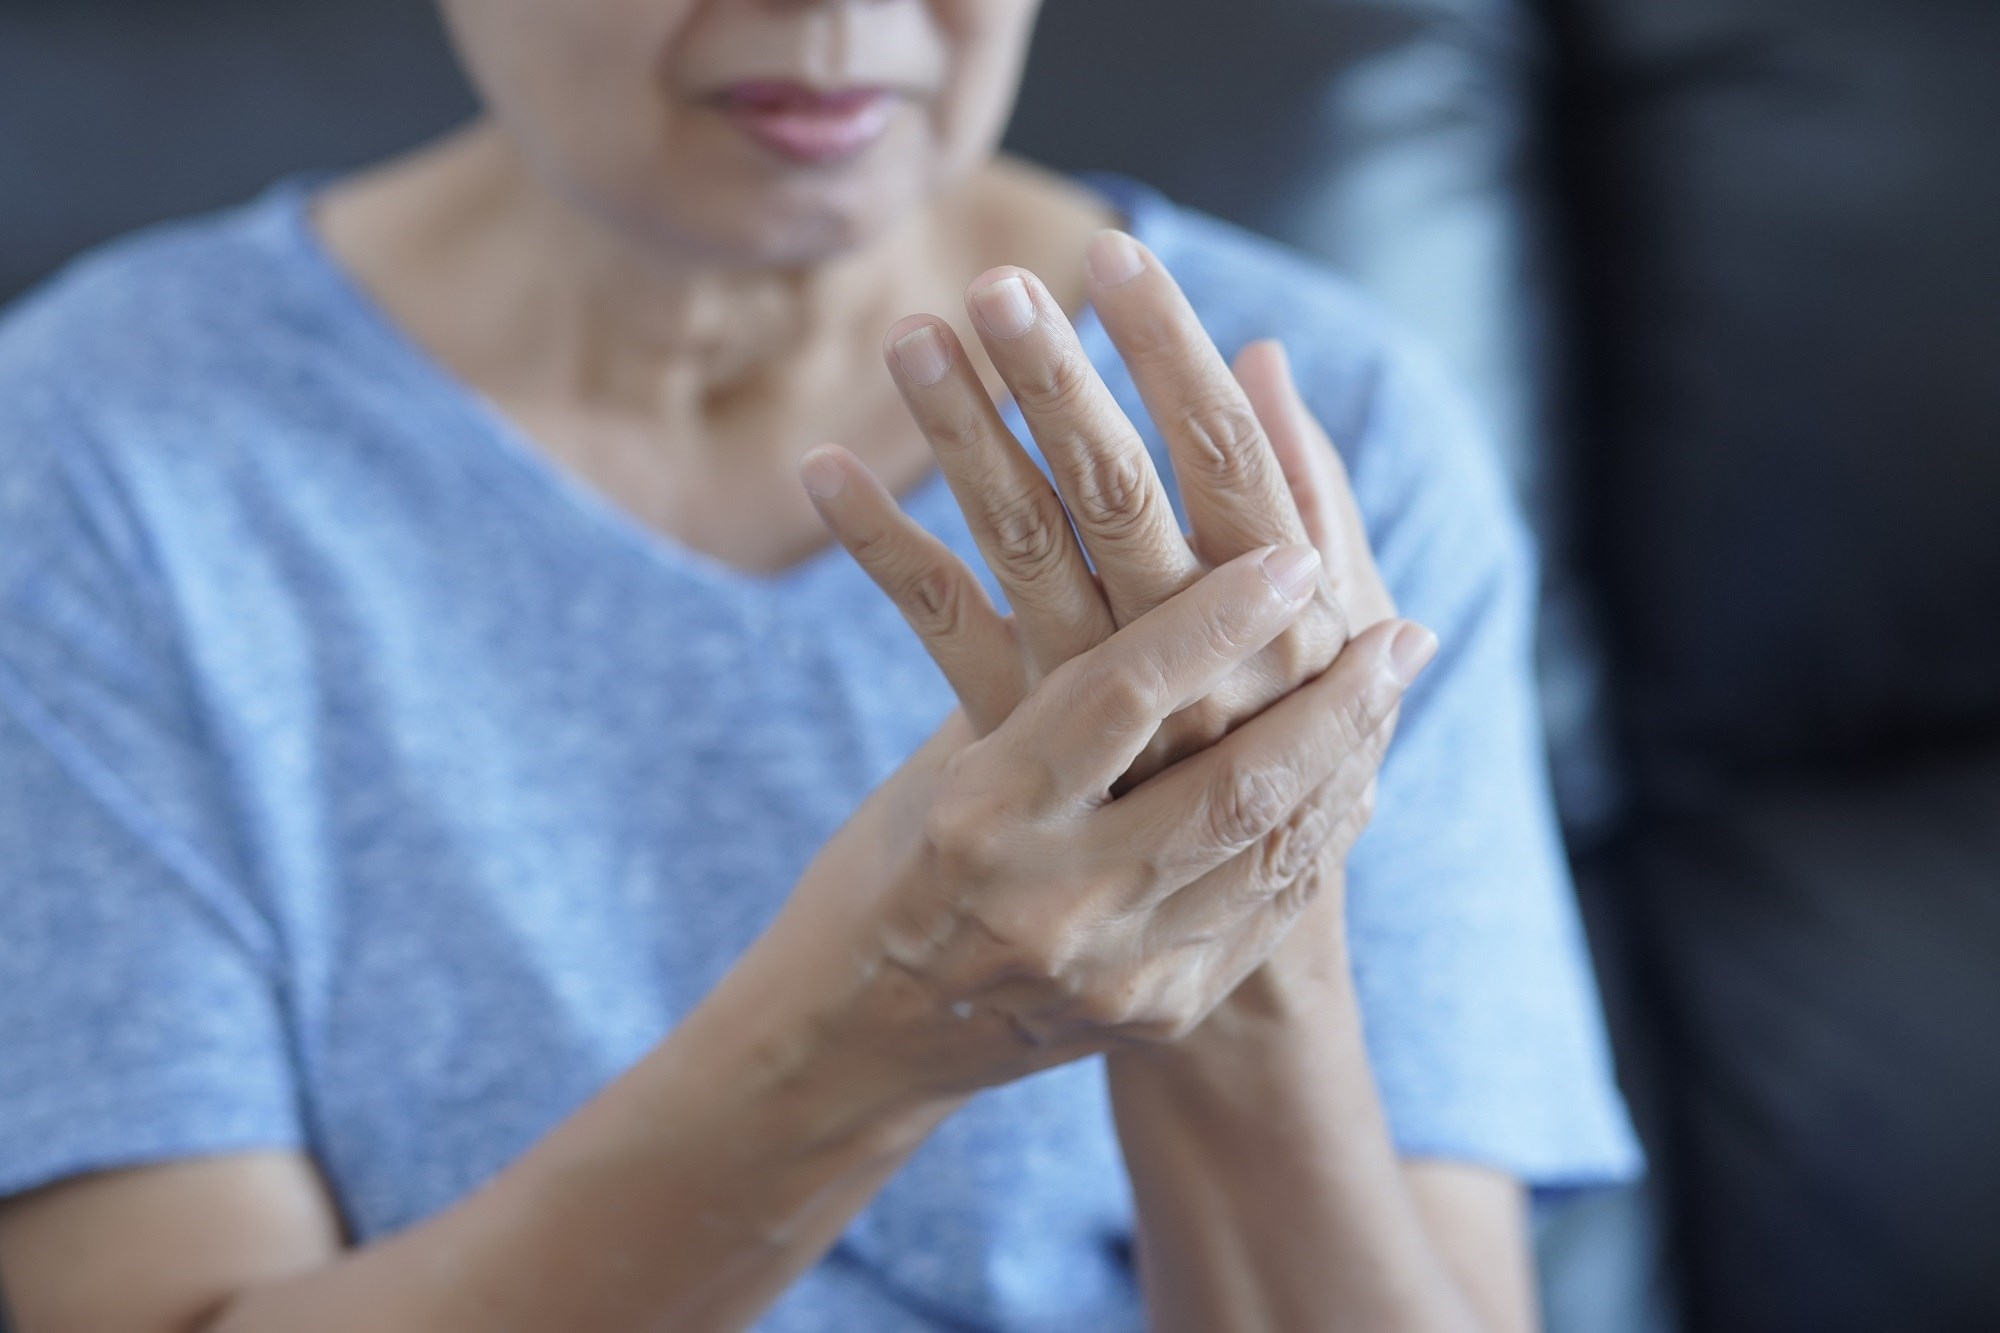 Rheumatoid pain can lead to a lifestyle of reduced physical activity that is associated with the development of T2D.